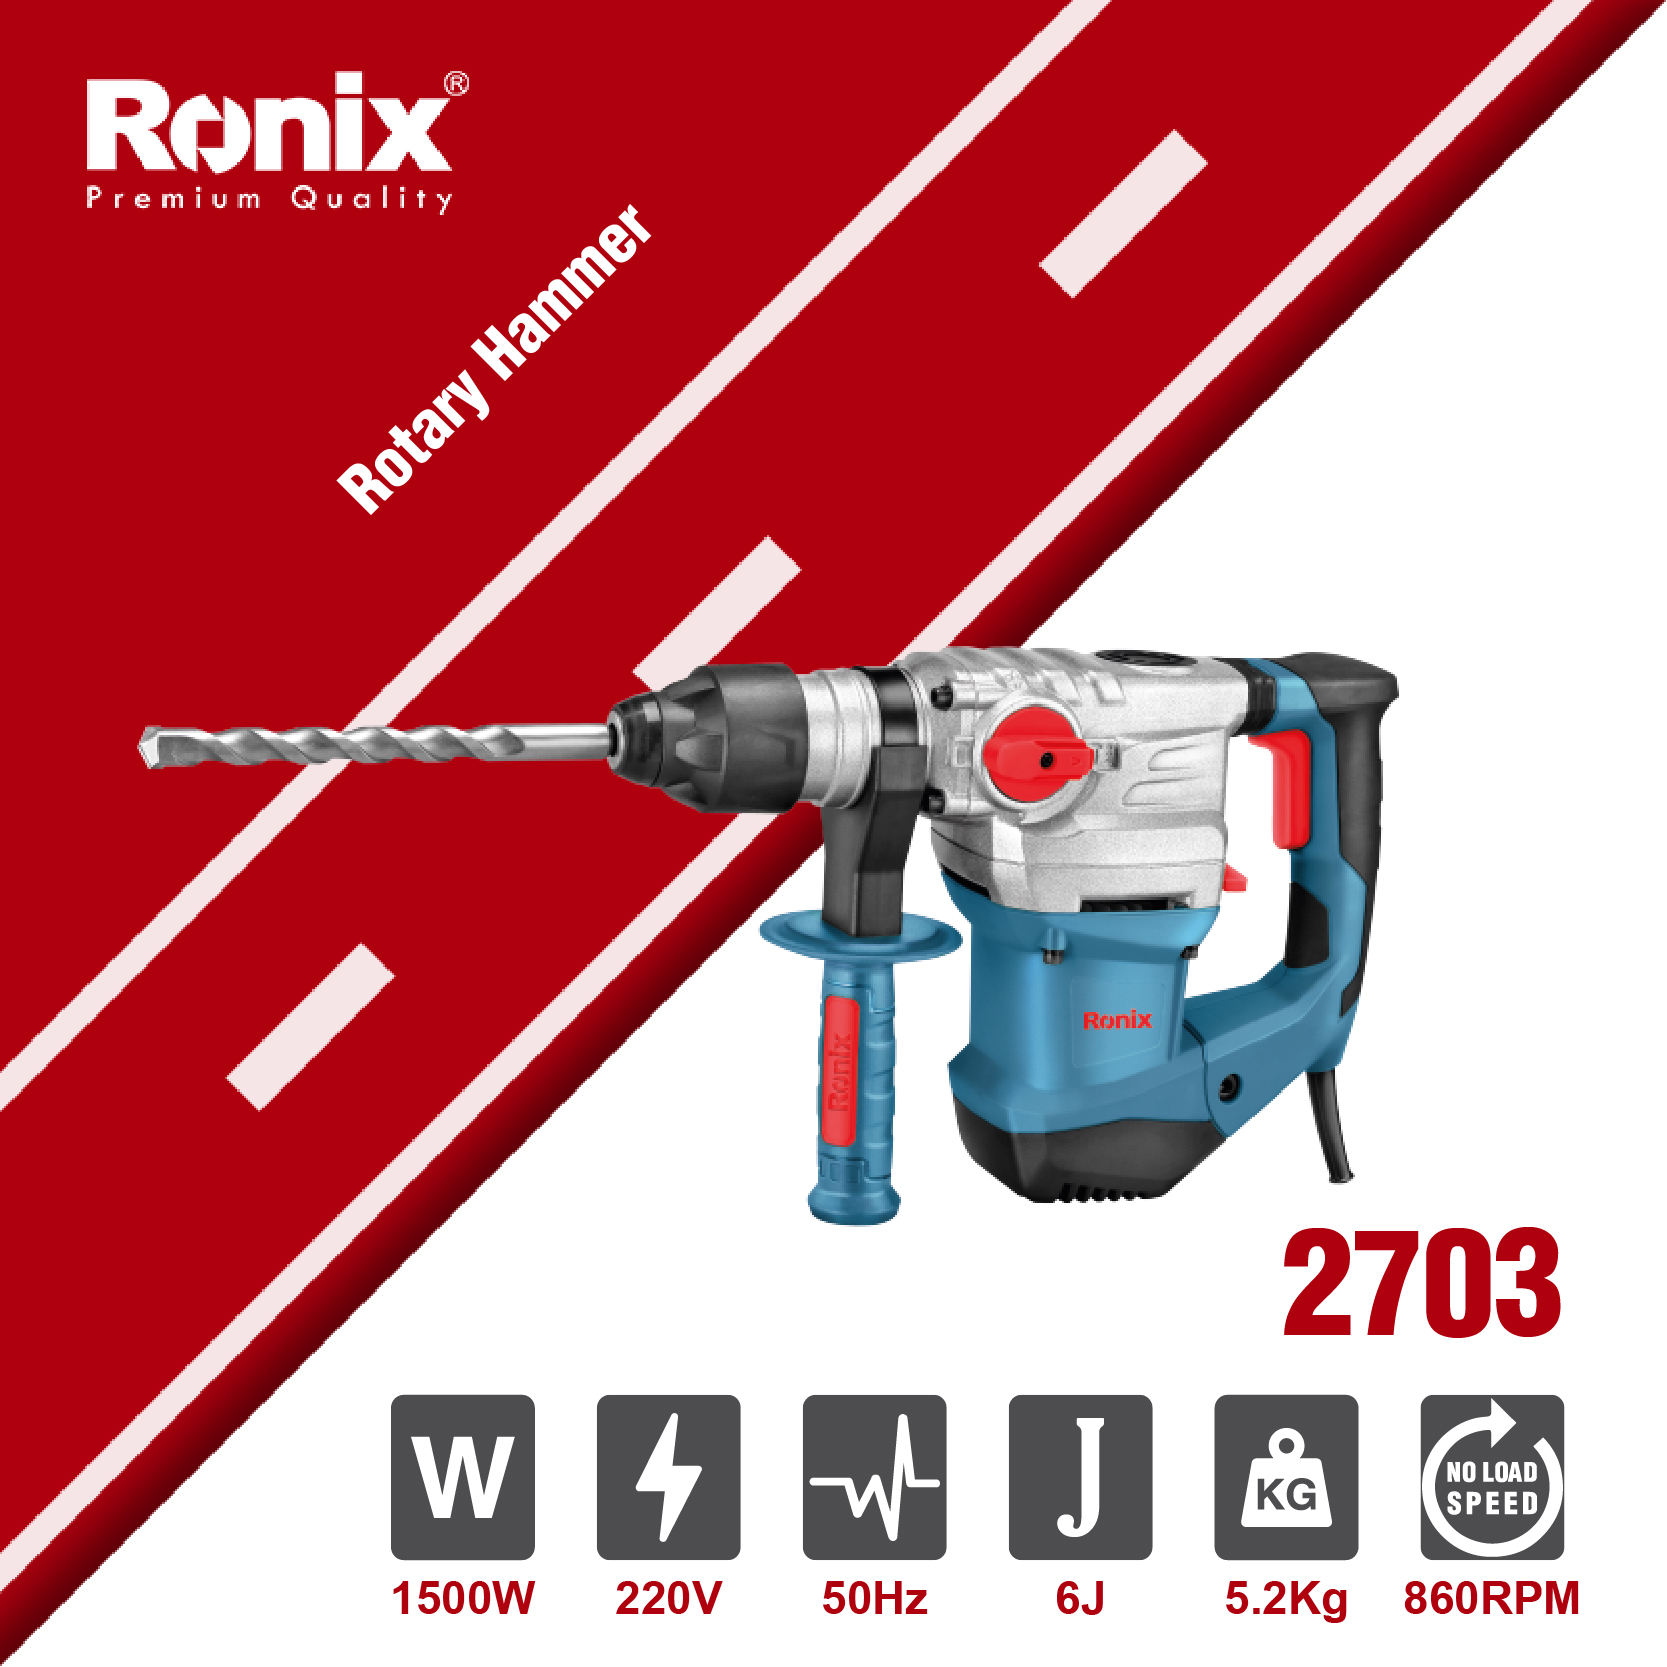 Ronix New Model 2703 1500W 32mm High Power Tools Rotary Hammer suzhou Hammer Drill